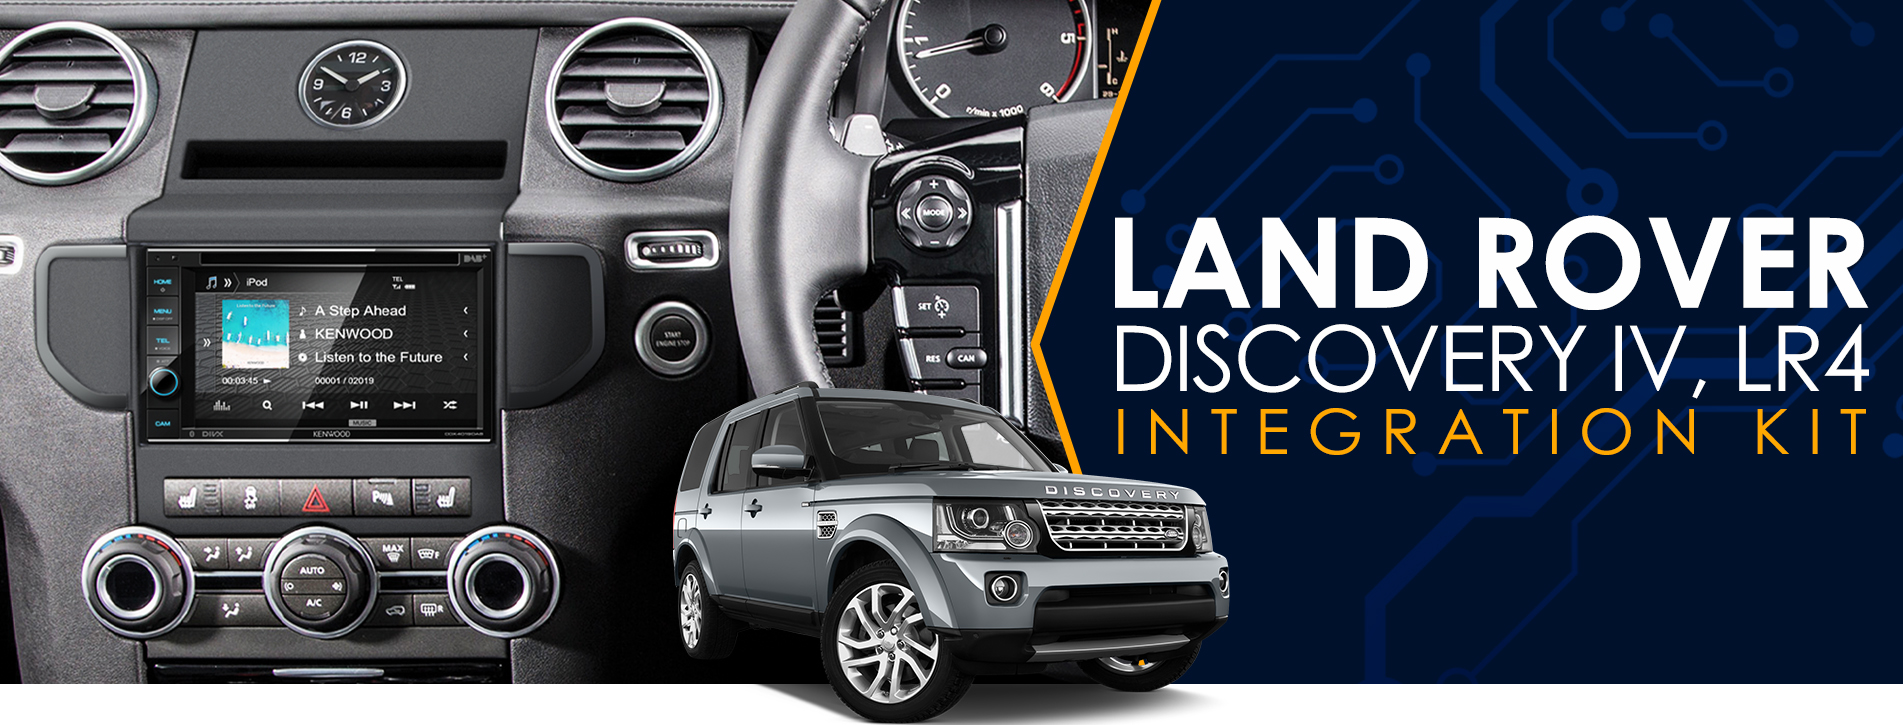 hight resolution of land rover installation kit